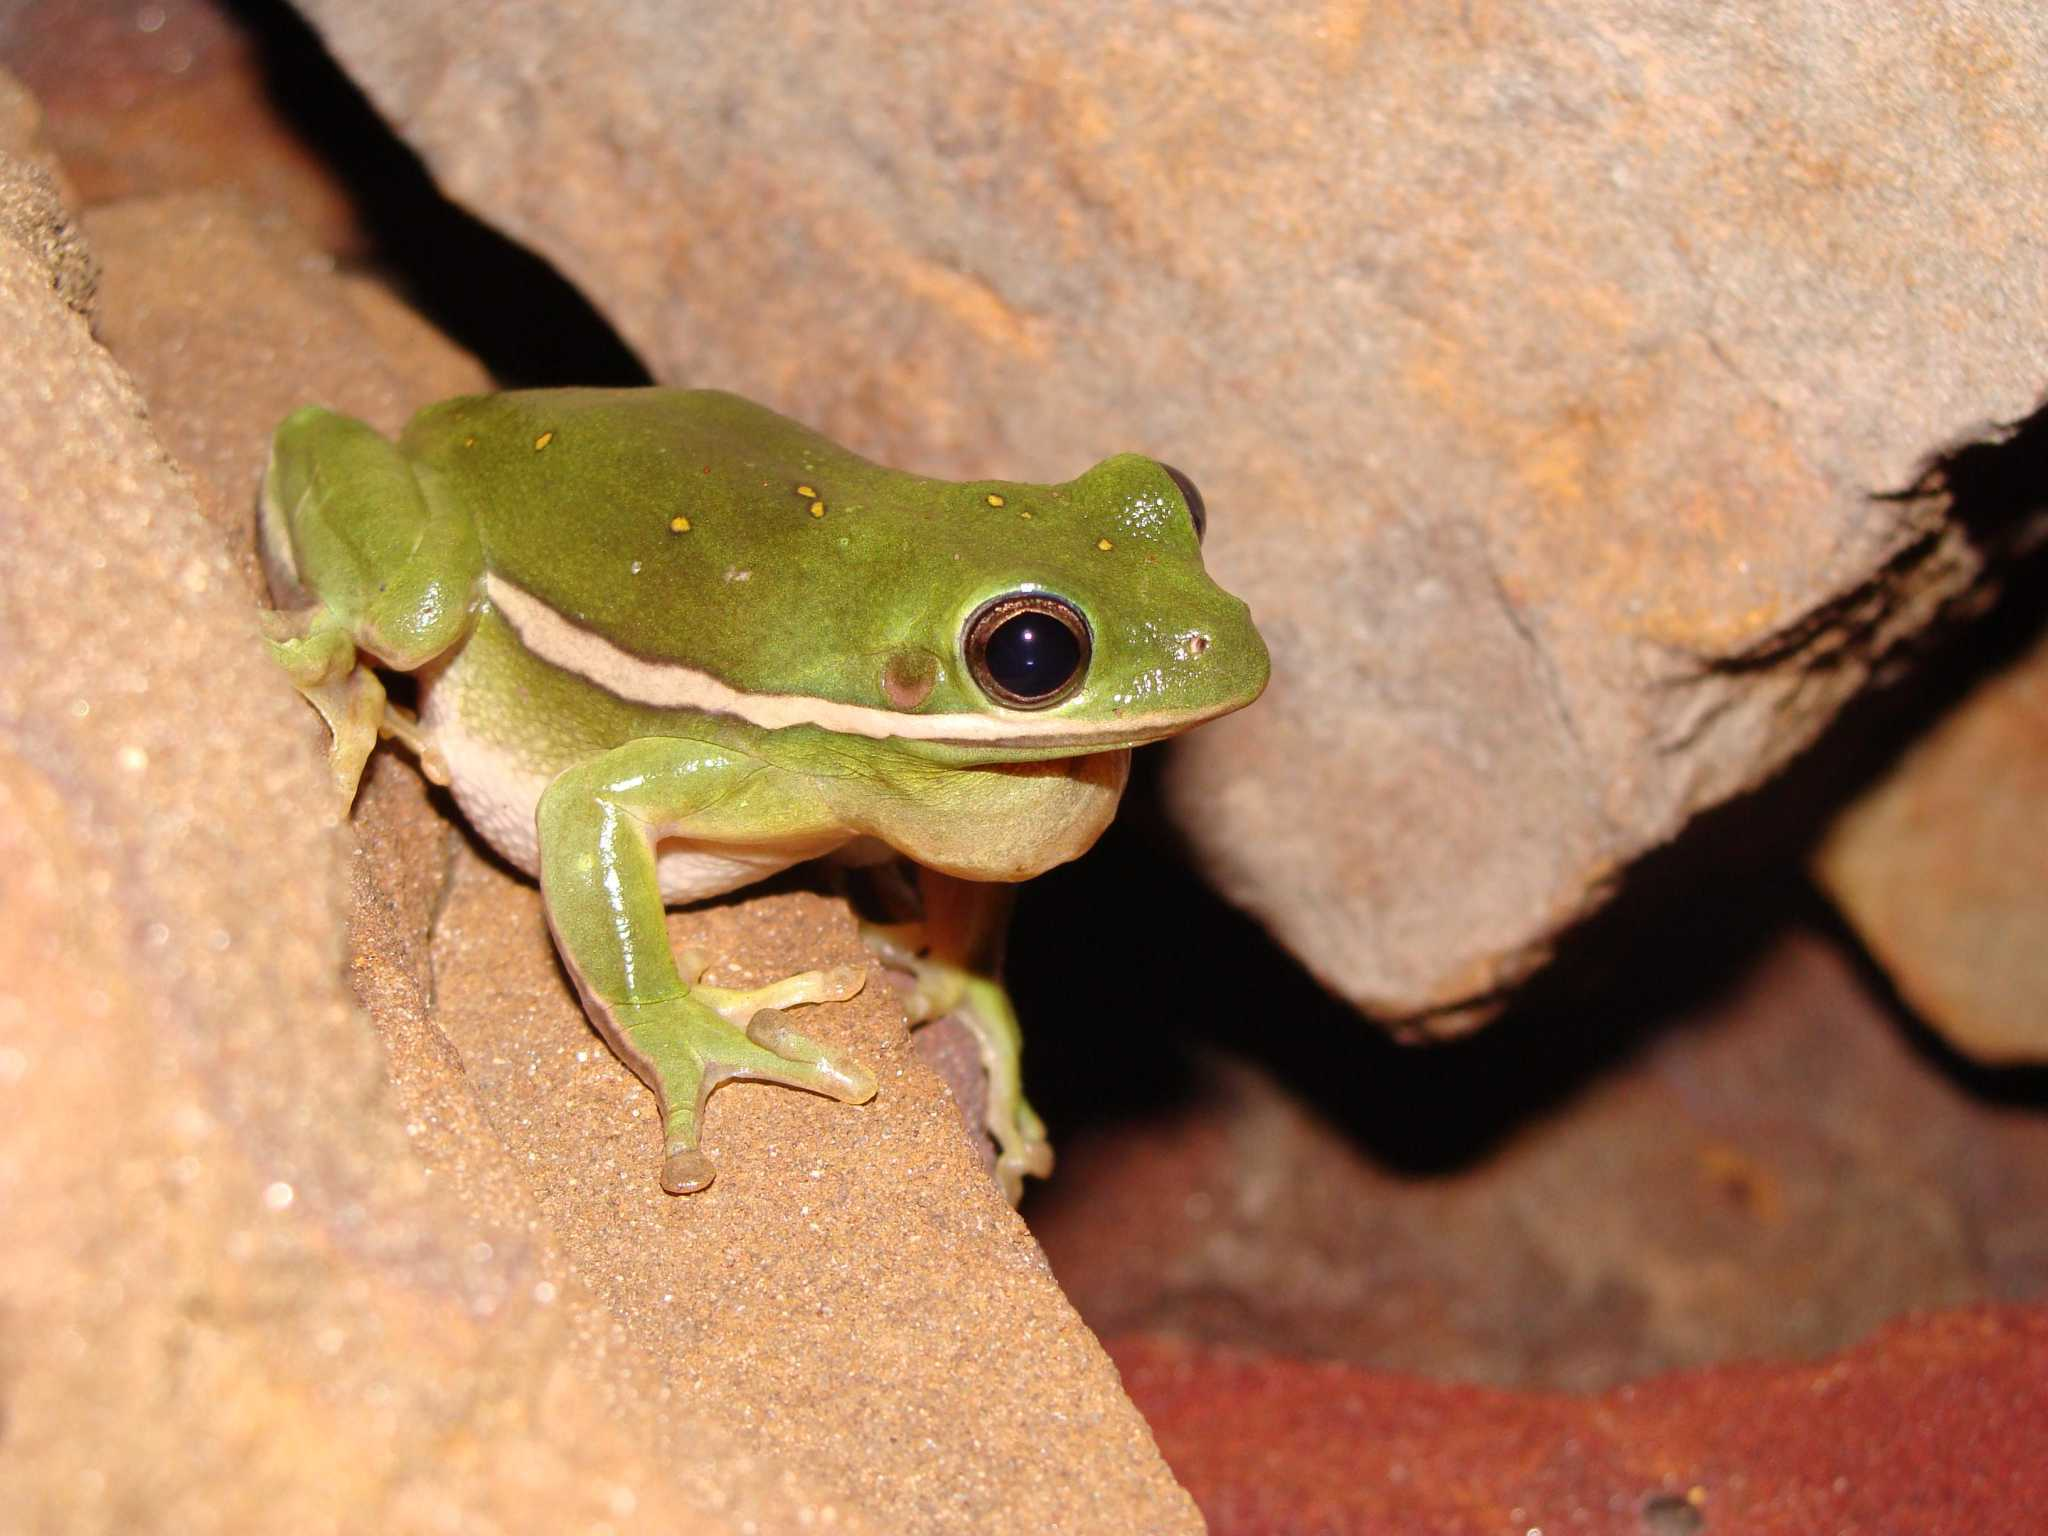 Amphibian armies set to descend on Montgomery County as summer nears end